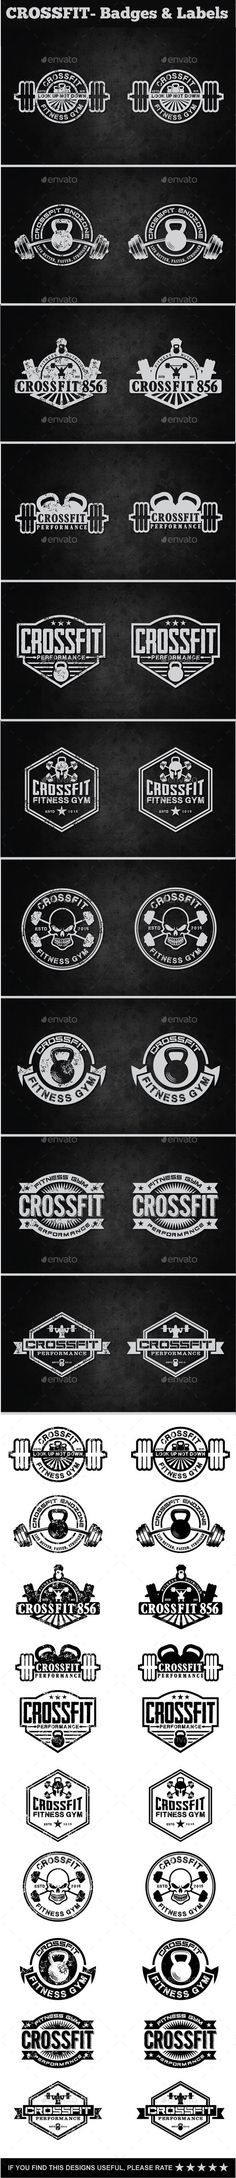 Crossfit- Labels & Badges #design #label Download: http://graphicriver.net/item/crossfit-labels-badges/11820703?ref=ksioks